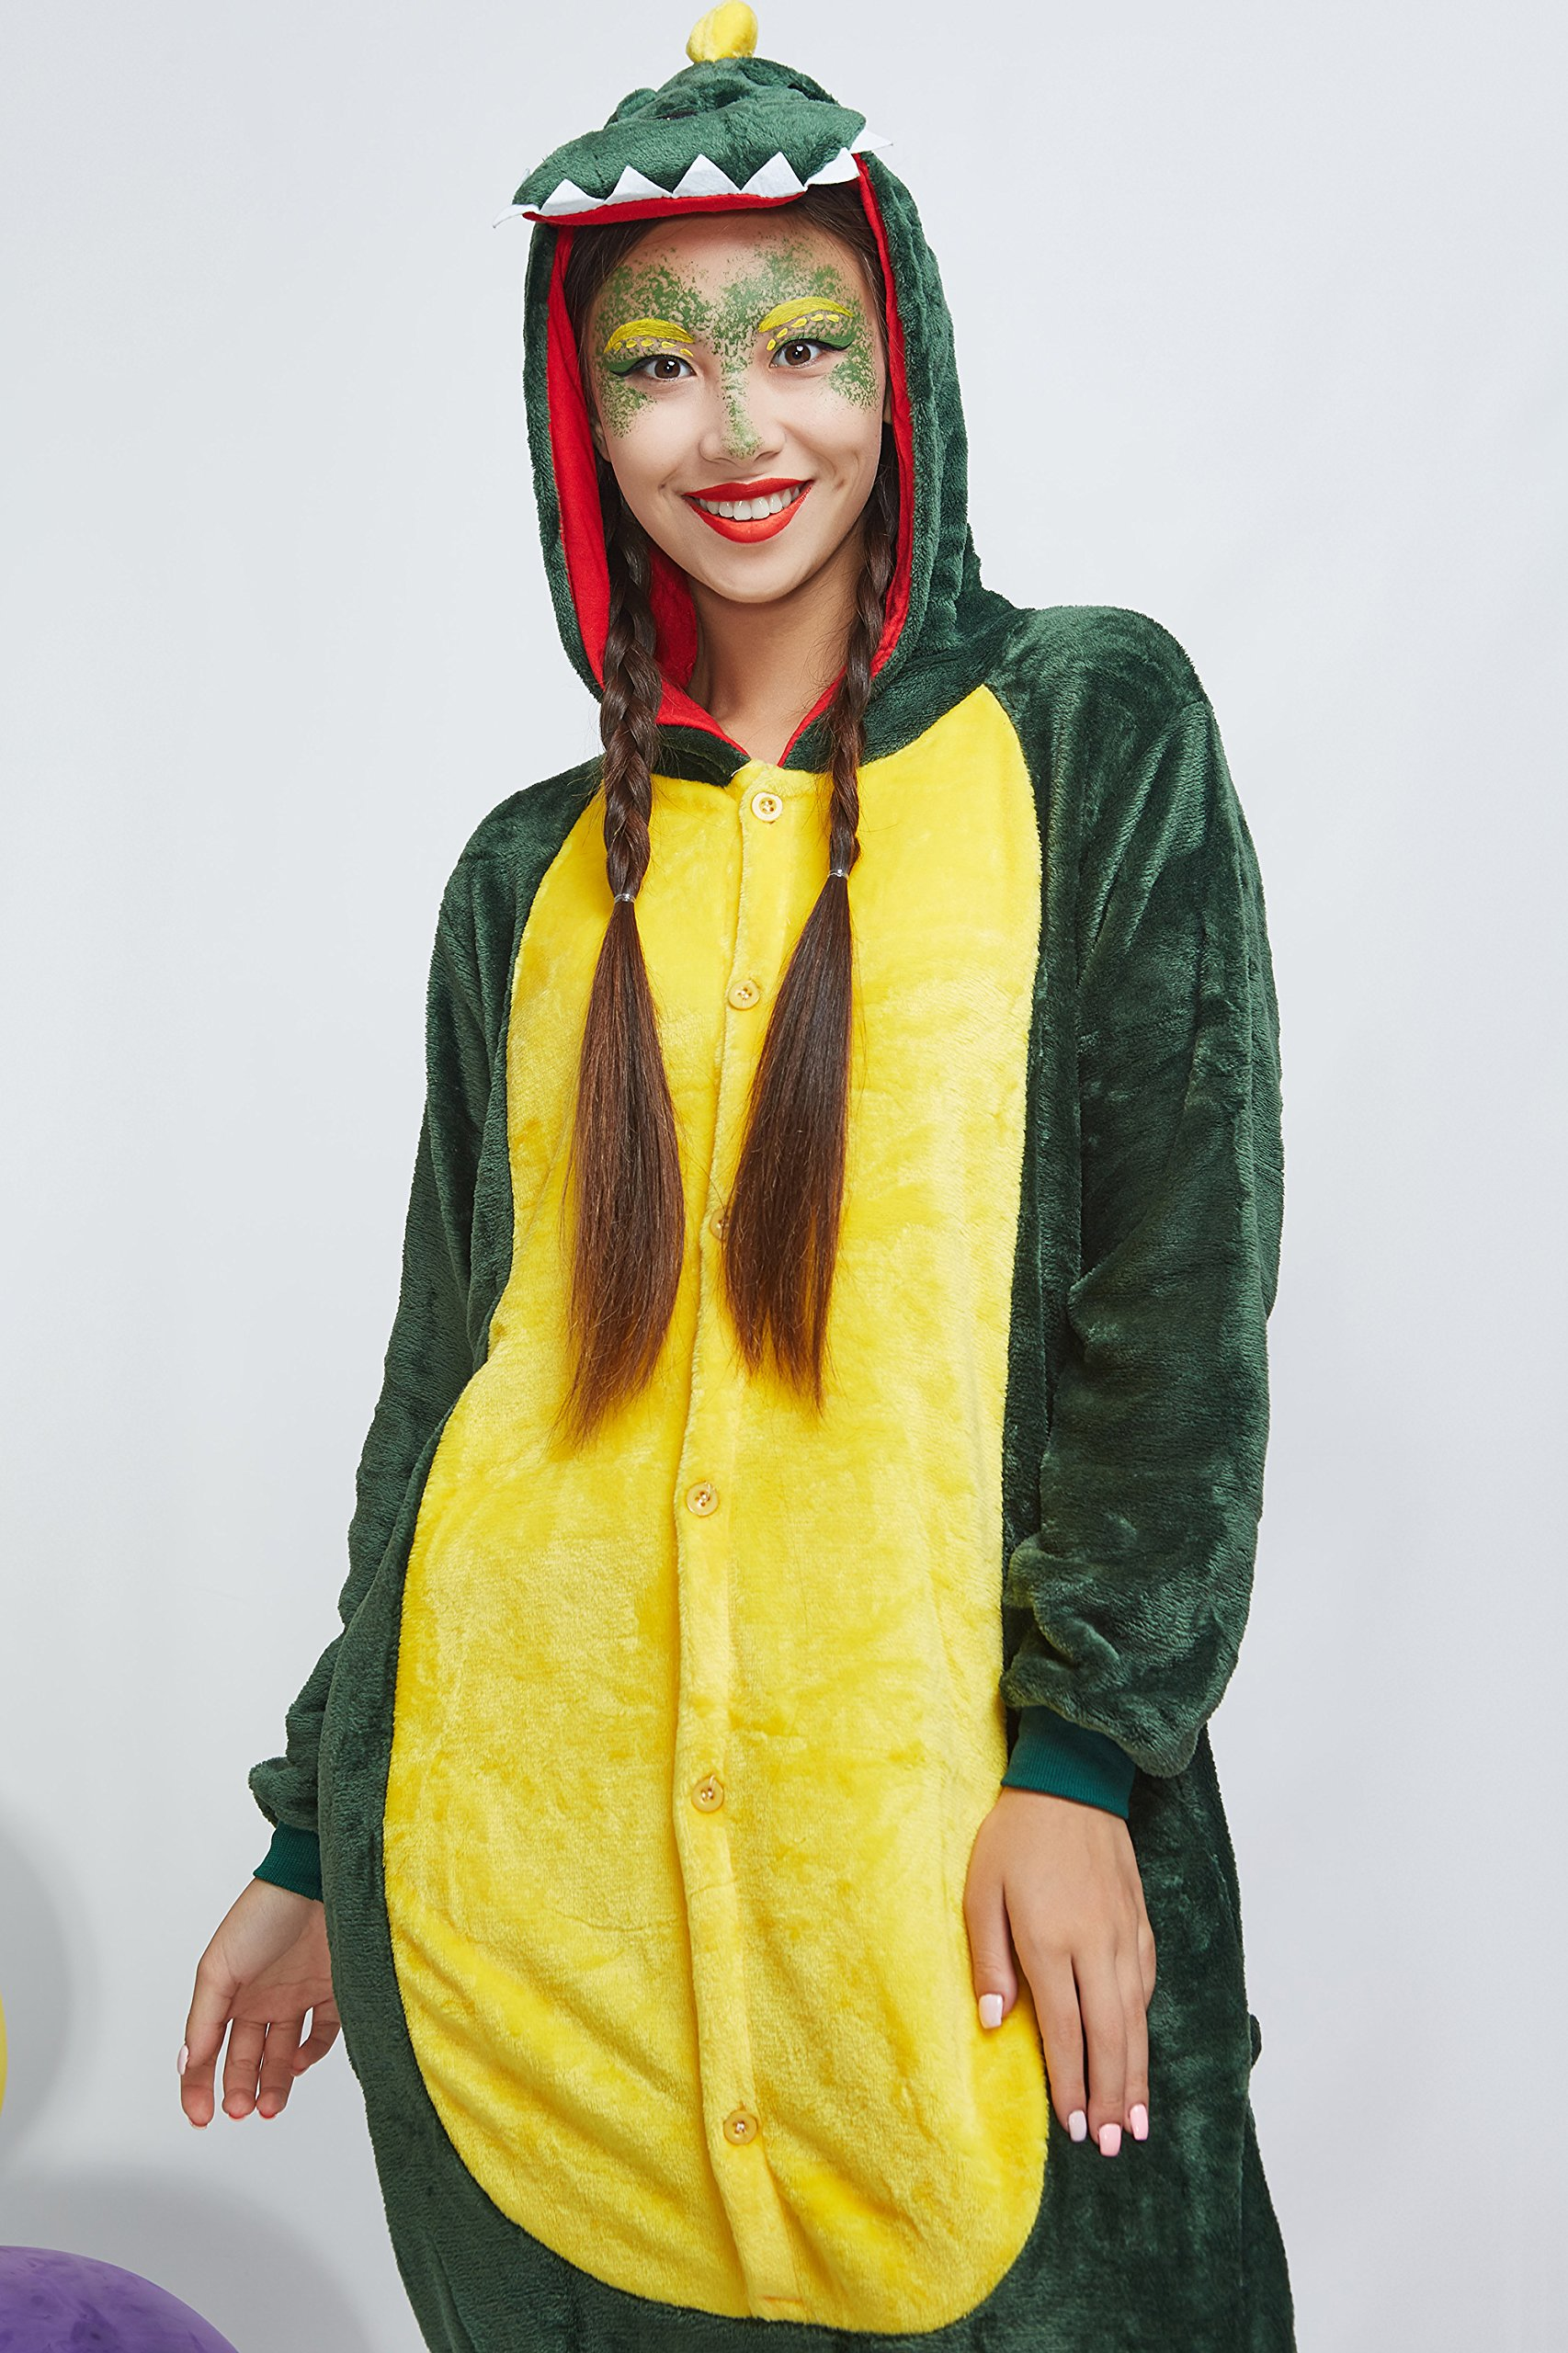 Adult Dragon Kigurumi Animal Onesie Pajamas Plush Onsie One Piece Cosplay Costume (Small, Green) by Nothing But Love (Image #7)